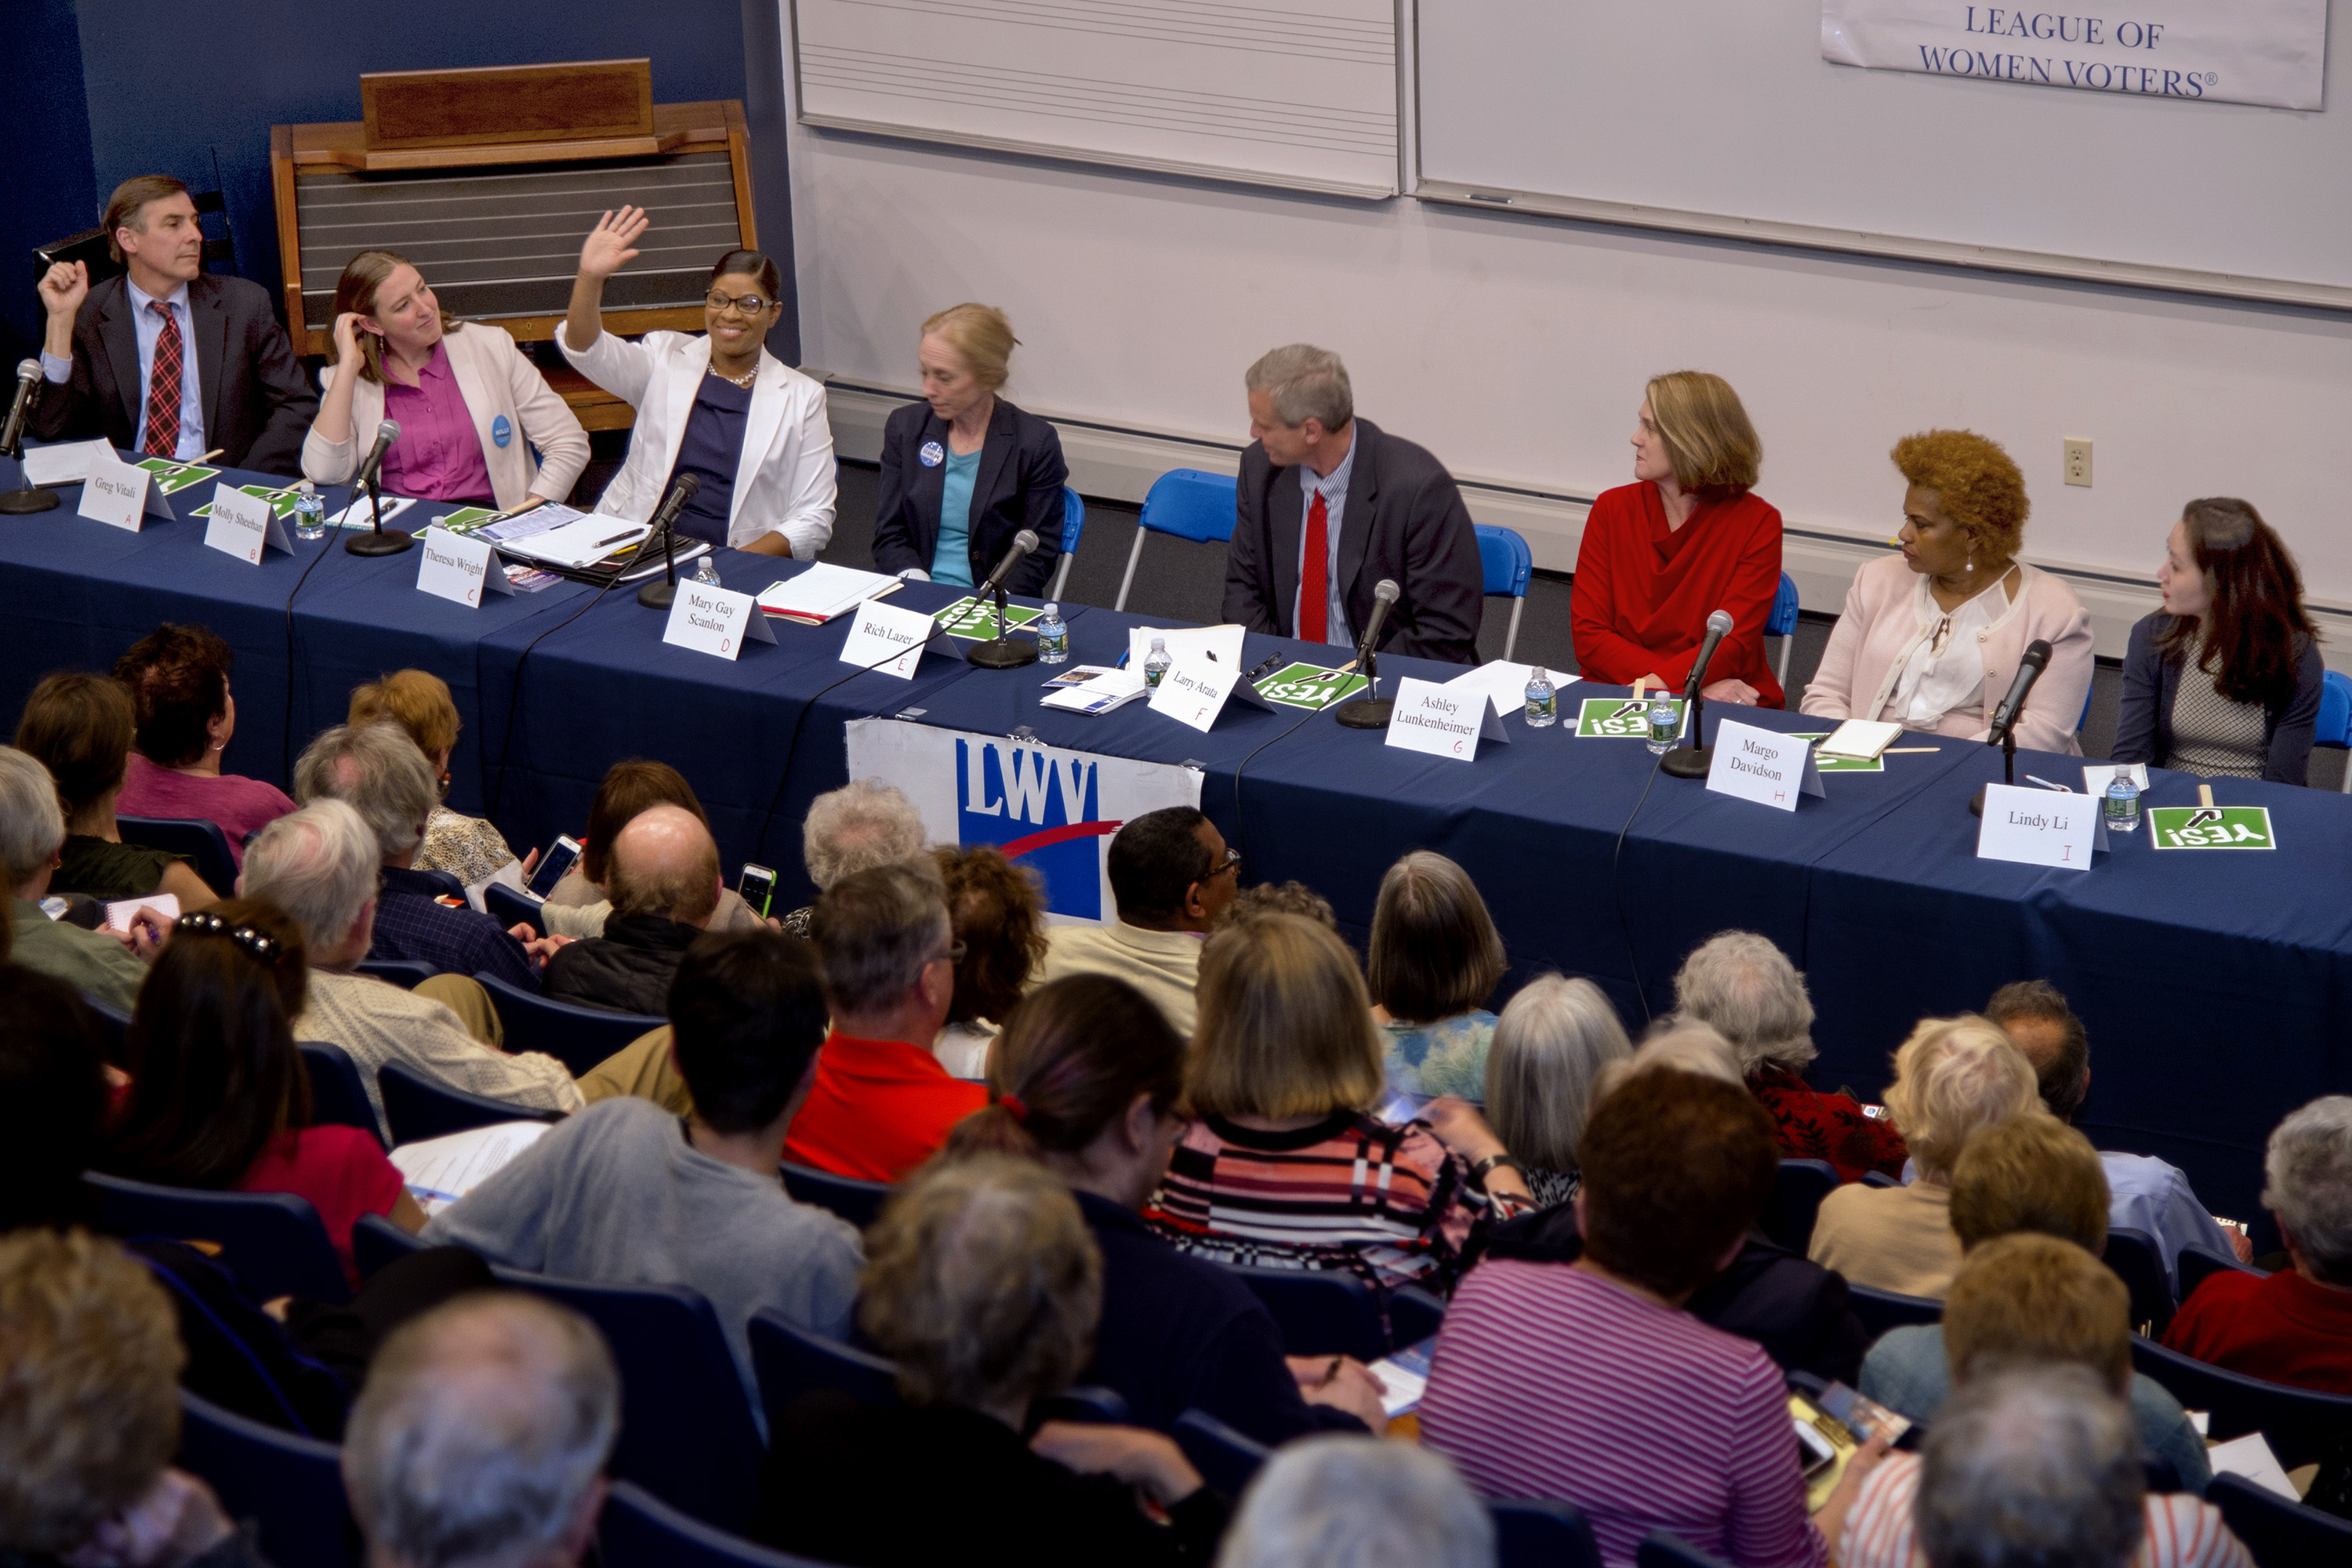 A record number of candidates filed to run for U.S. House in Pennsylvania. Here at a May 1 debate are Democratic Fifth District primary rivals (from left) Greg Vitali, Molly Sheehan, Theresa Wright (waving), Mary Gay Scanlon, Larry Arata, Ashley Lukenheimer, Margo Davidson, and Lindy Li.